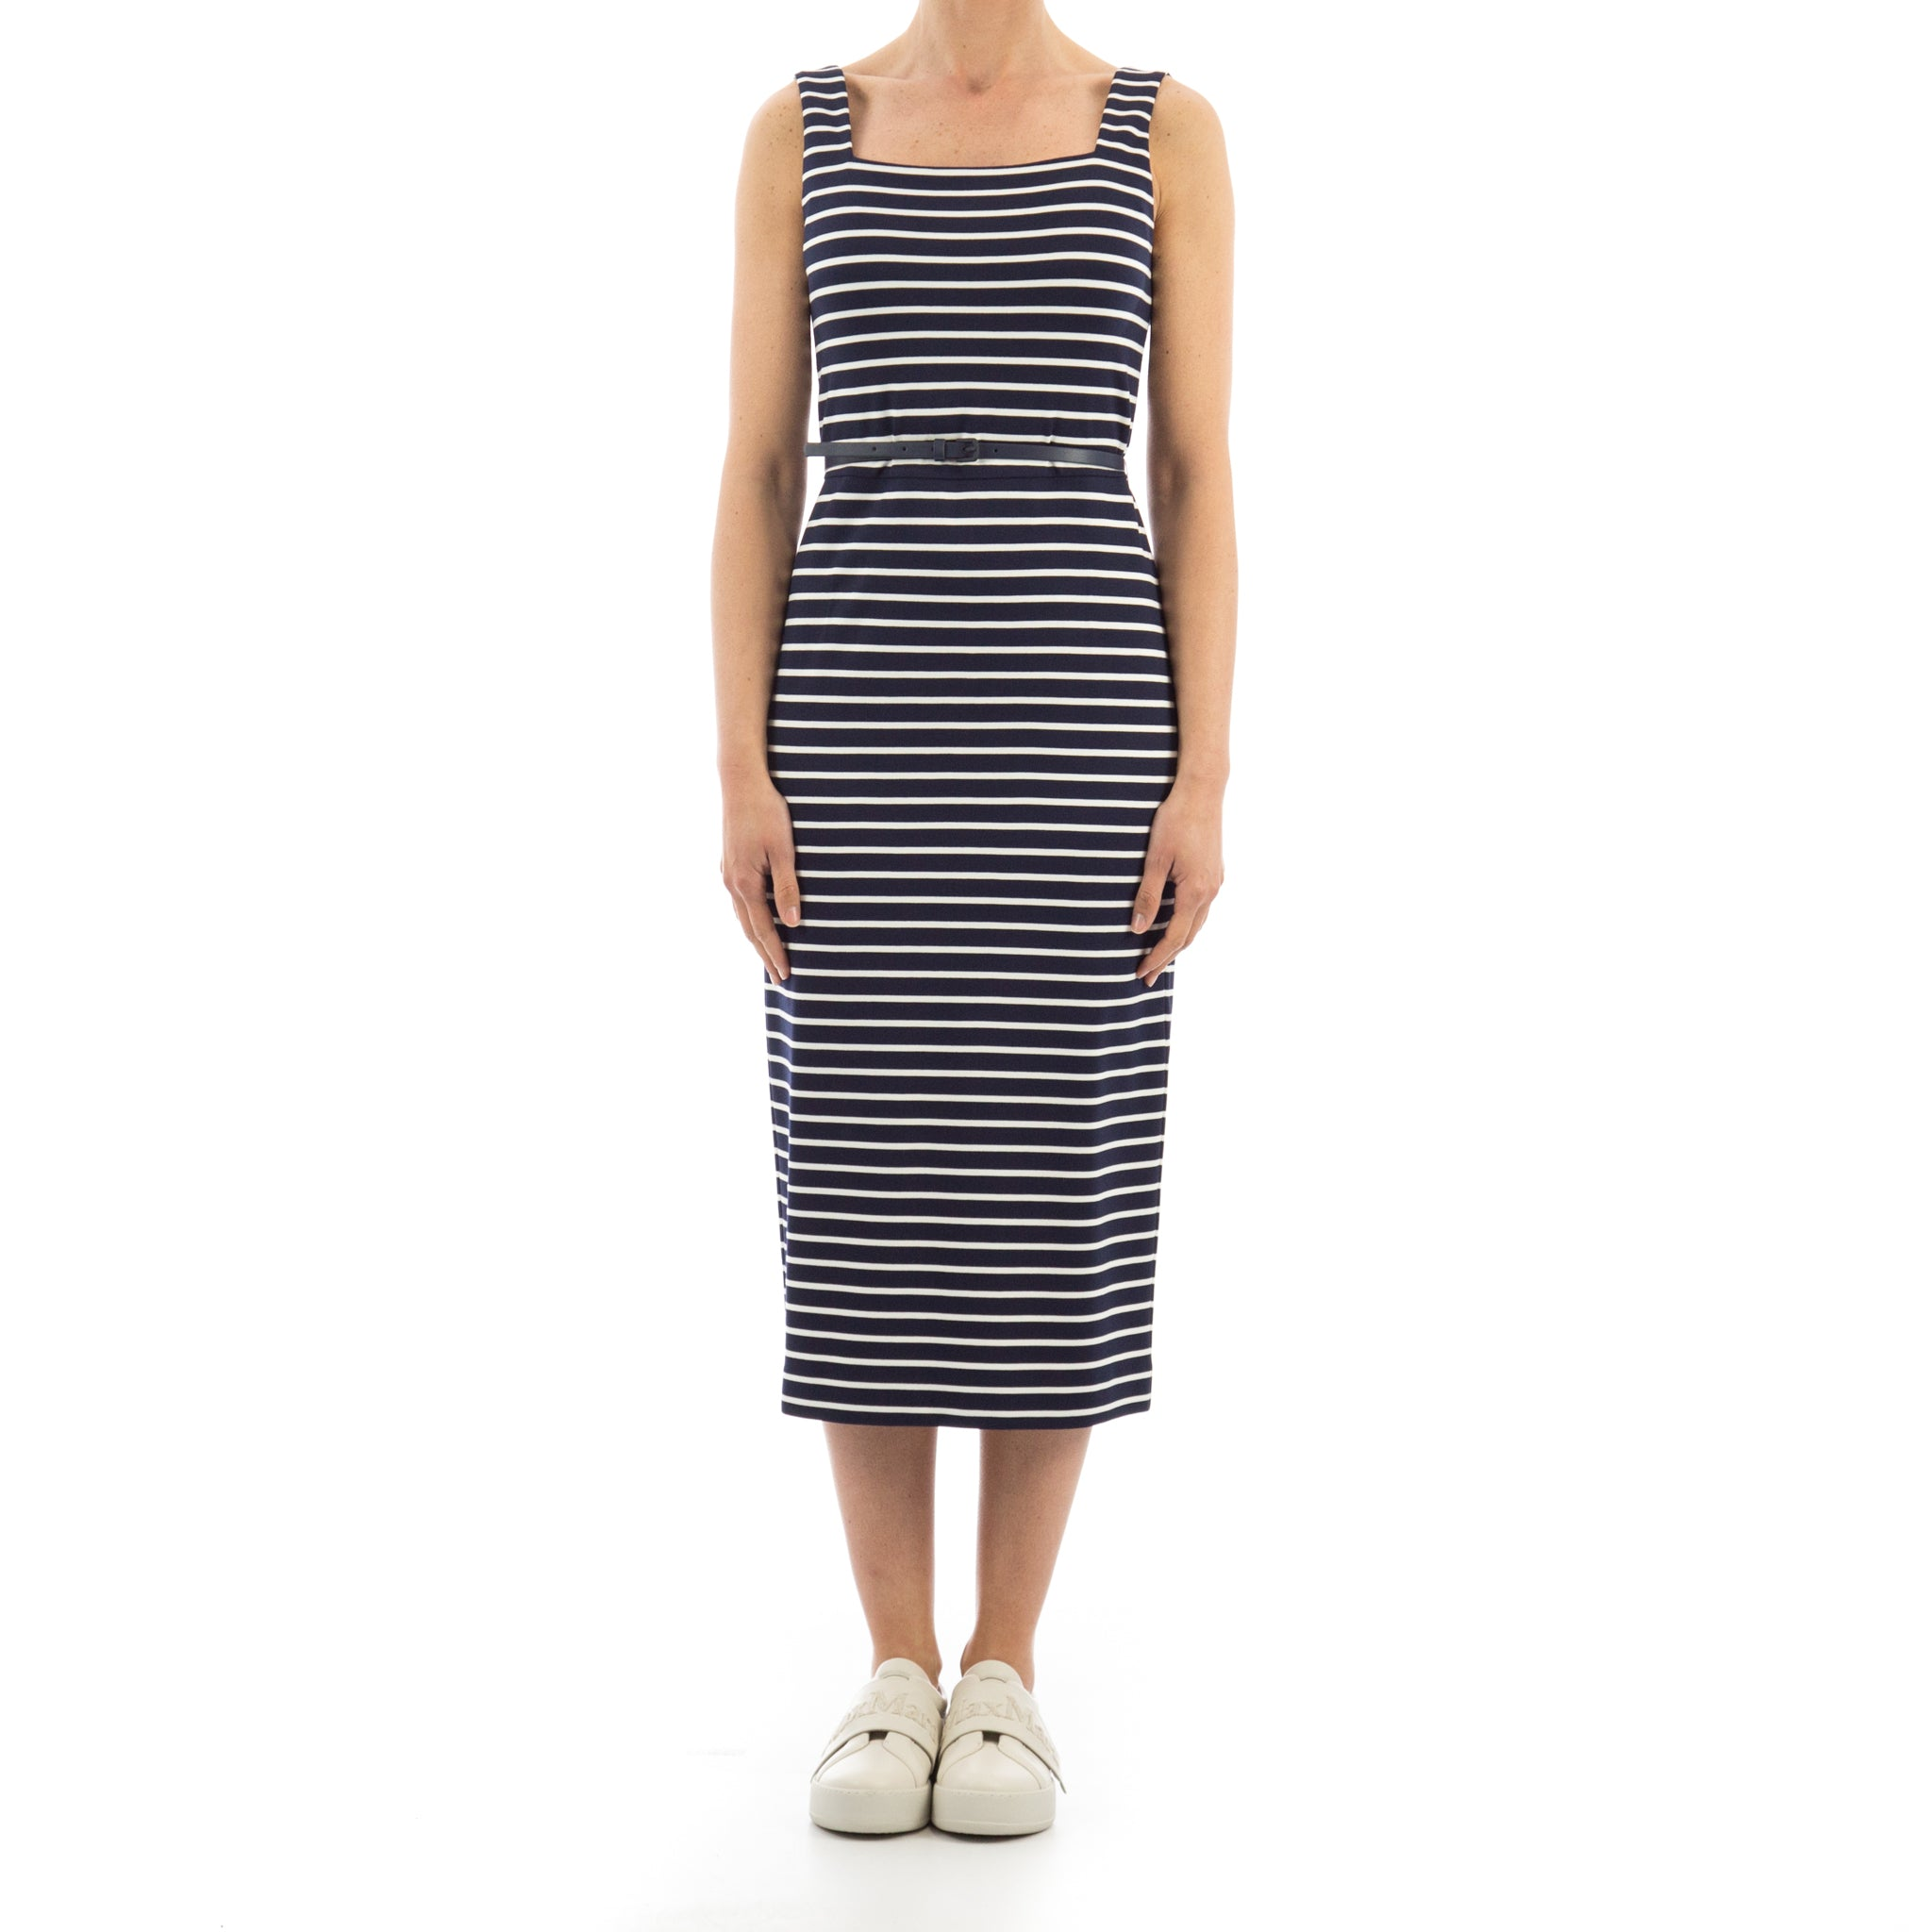 0182a9d4a4ec9 Max Mara Studio Striped Jersey Dress-MAX MARA STUDIO-SHOPATVOI.COM - Luxury